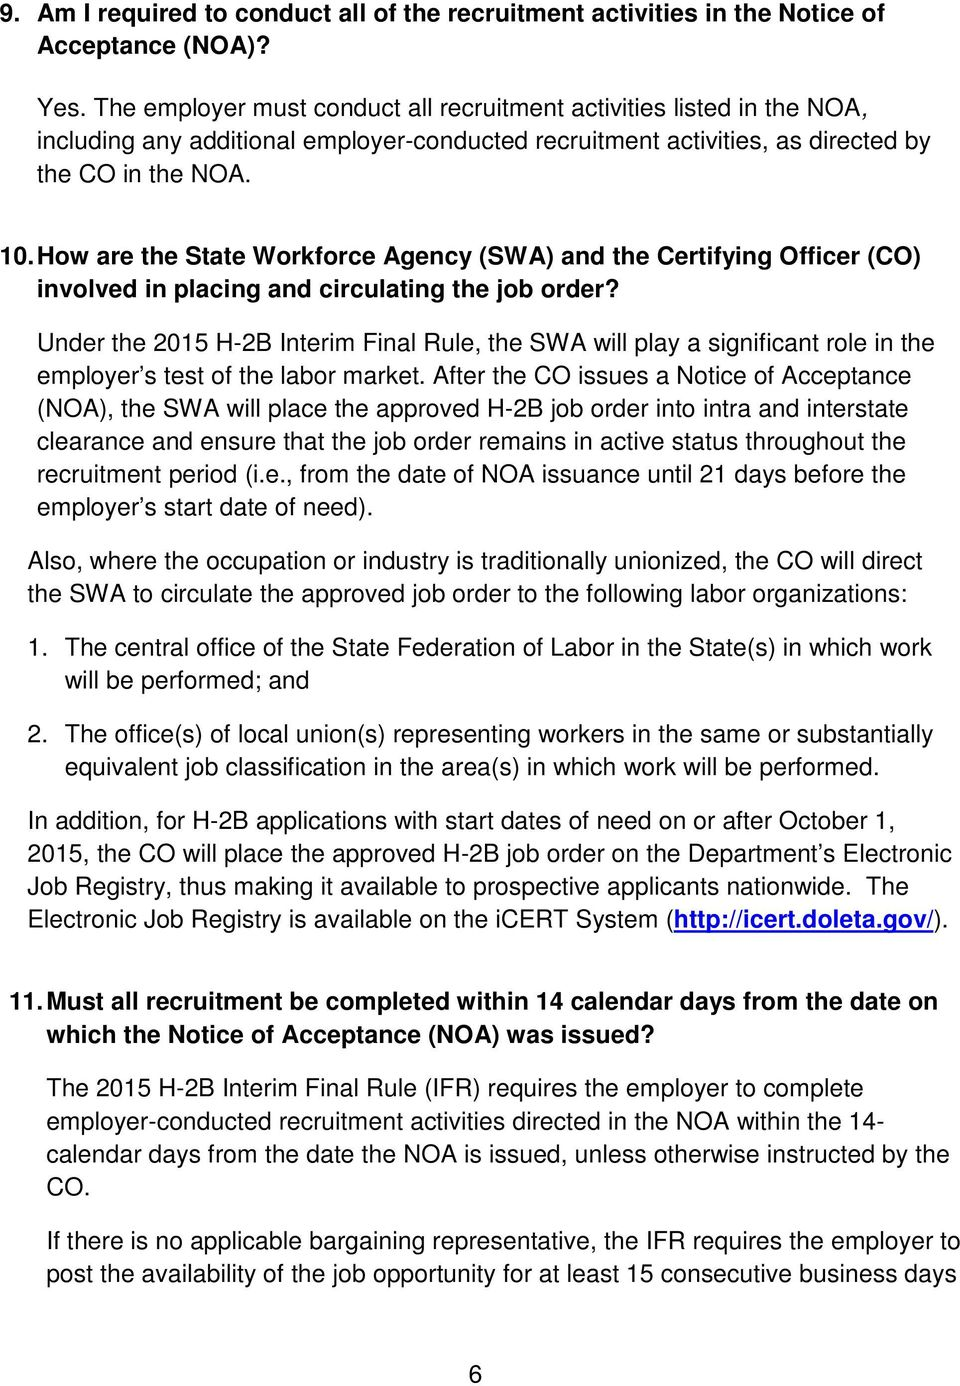 How are the State Workforce Agency (SWA) and the Certifying Officer (CO) involved in placing and circulating the job order?